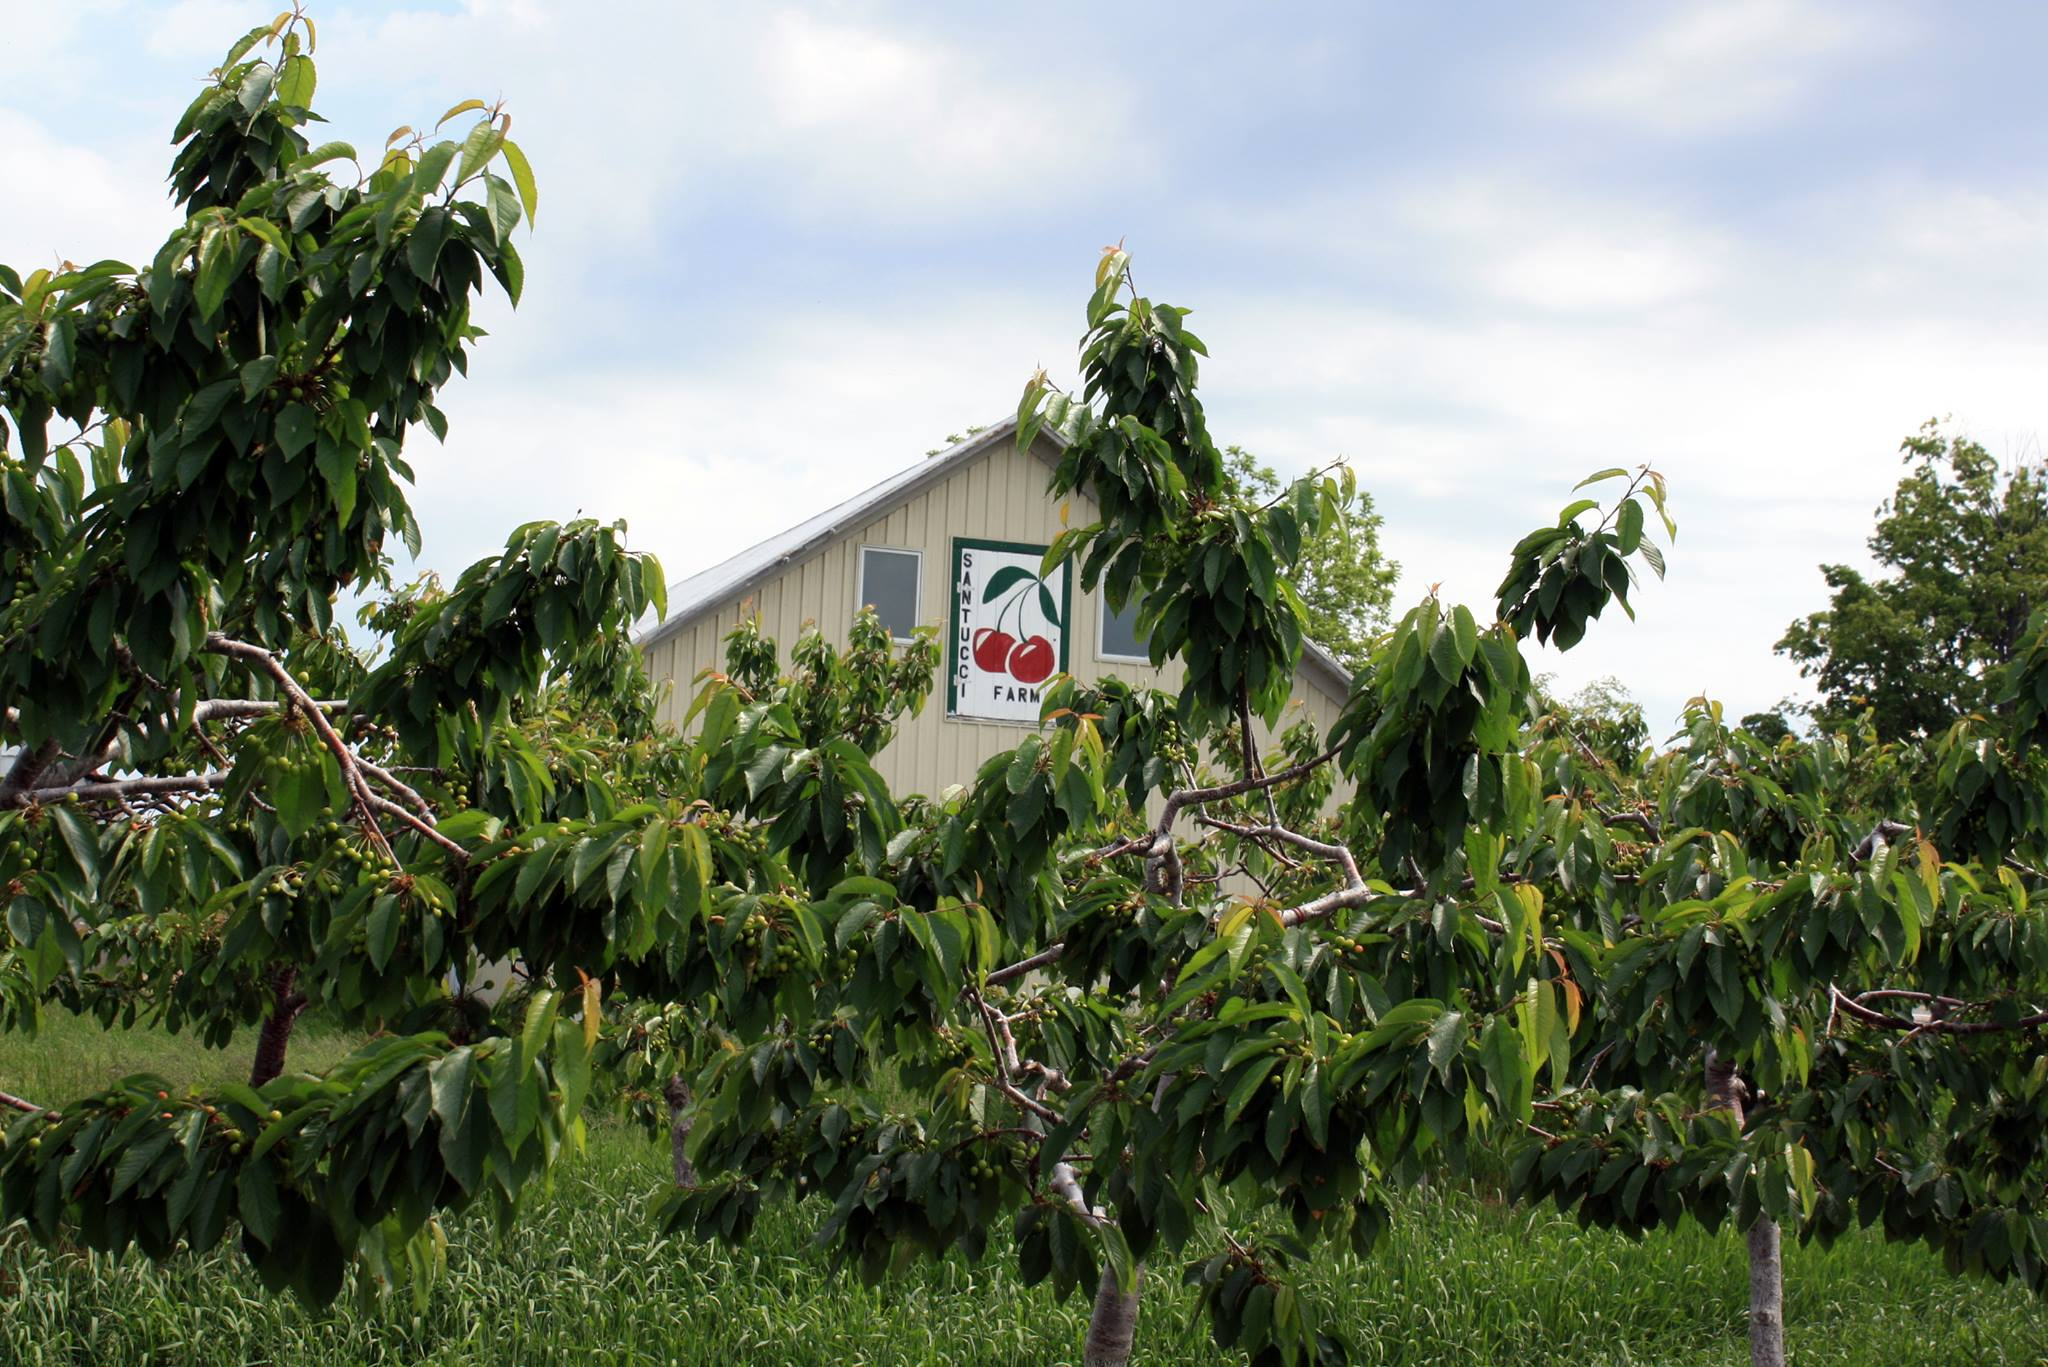 The Santucci Cherry Farm in Traverse City, MI. Photo via their Facebook page.